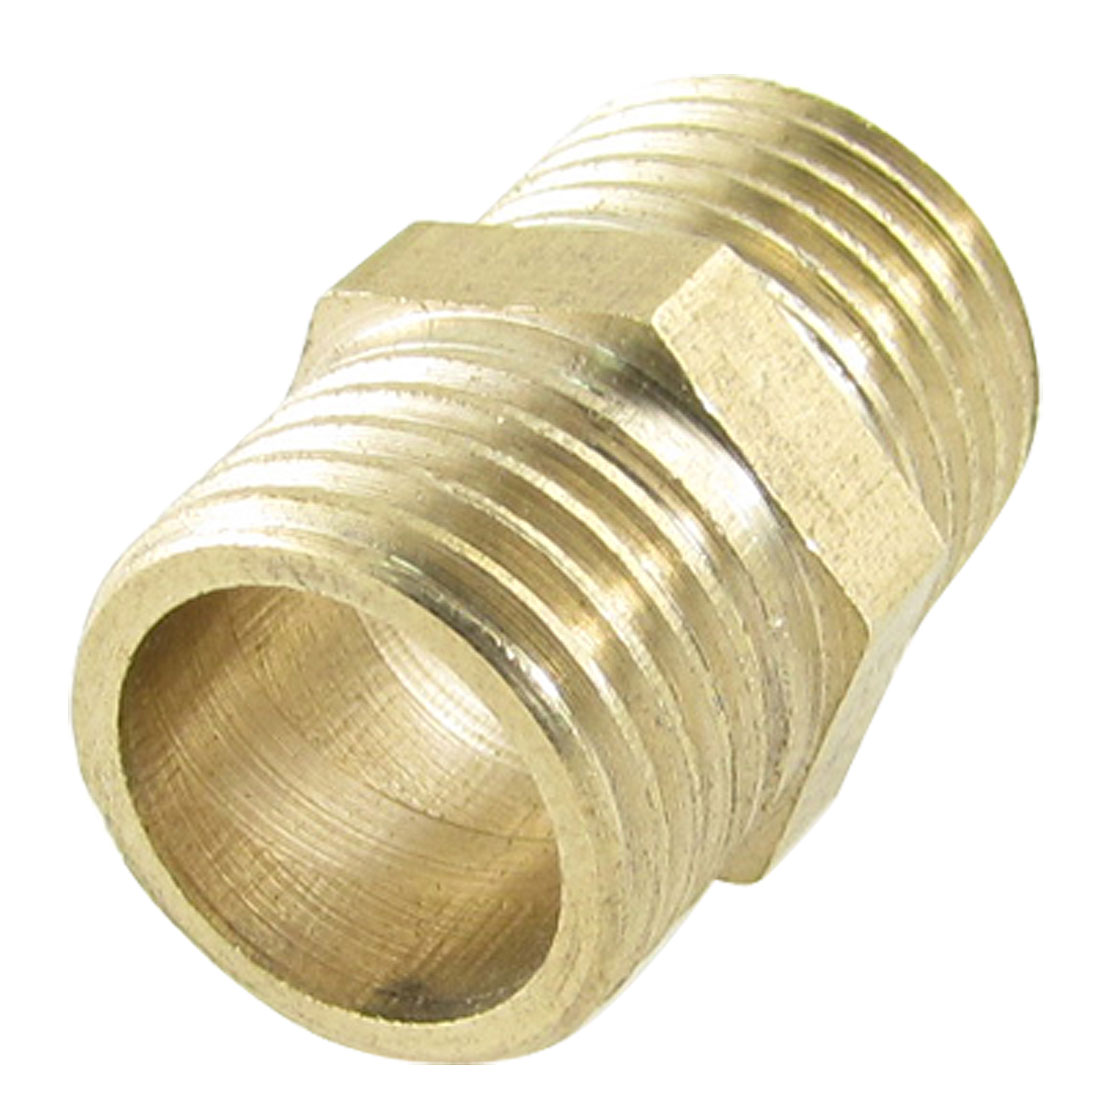 Brass-1-4-PT-x-1-4-PT-Male-Thread-Pneumatic-Pipe-Hex-Nipple-Equal-Union